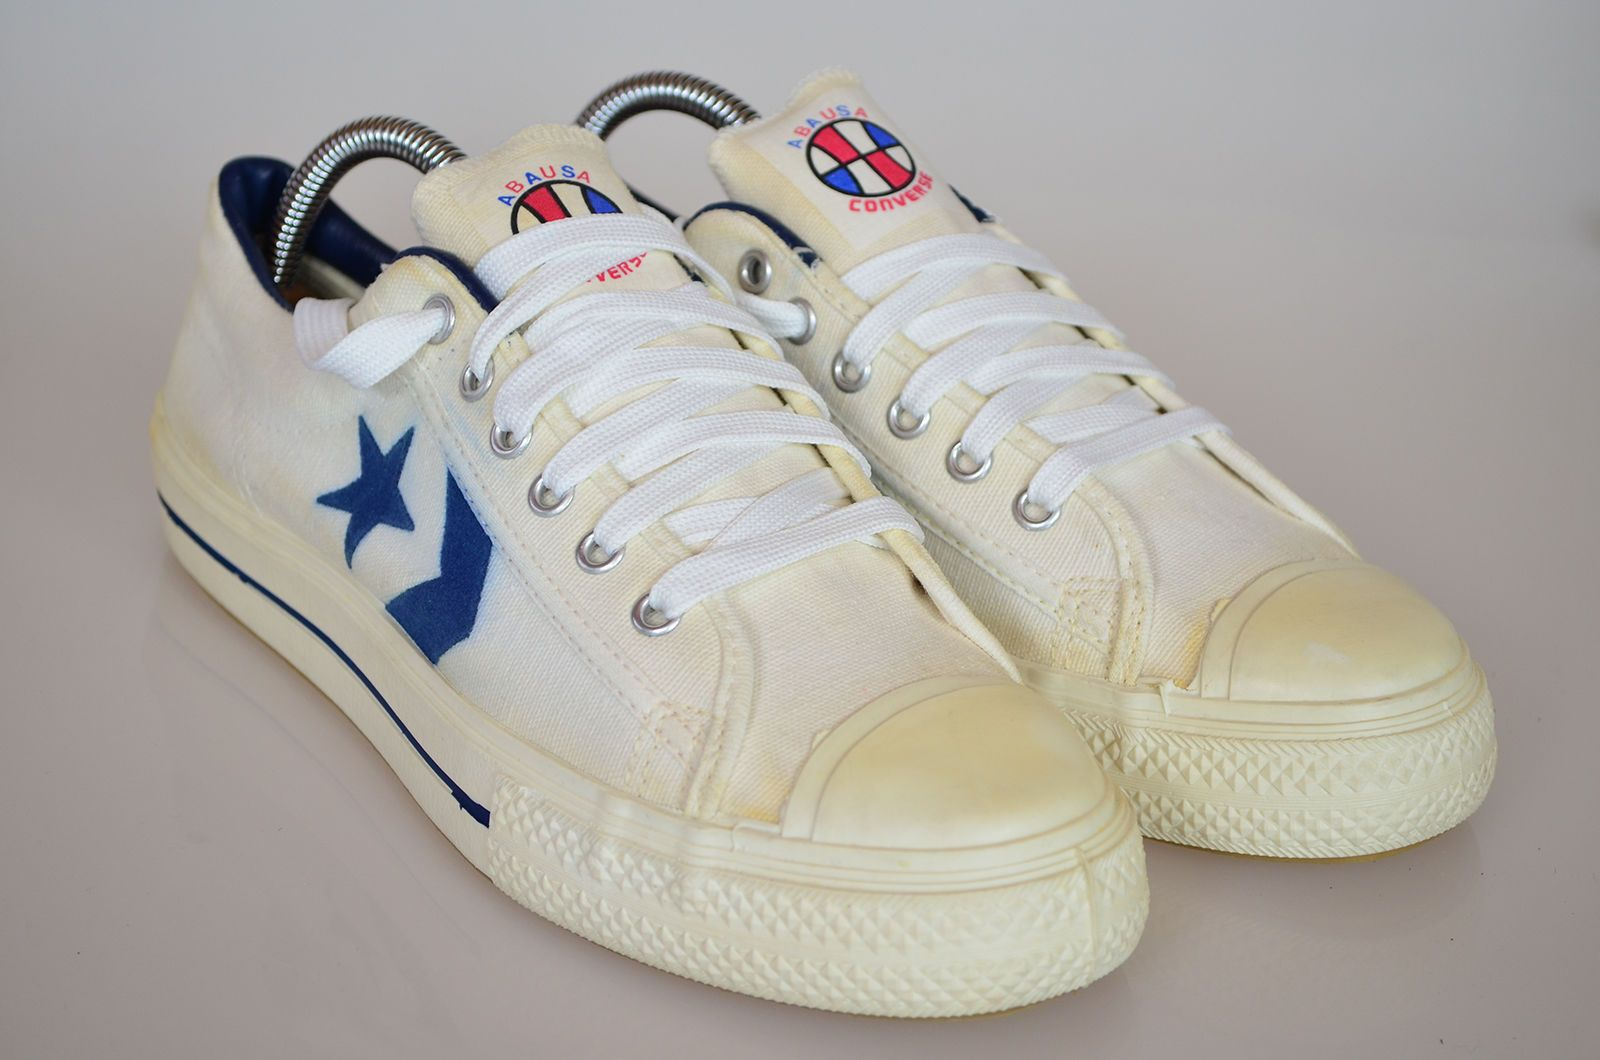 e6daccdd68c9 Vintage 70 s Converse All Star ABA Low Top Sneaker Made in USA Size 7.5